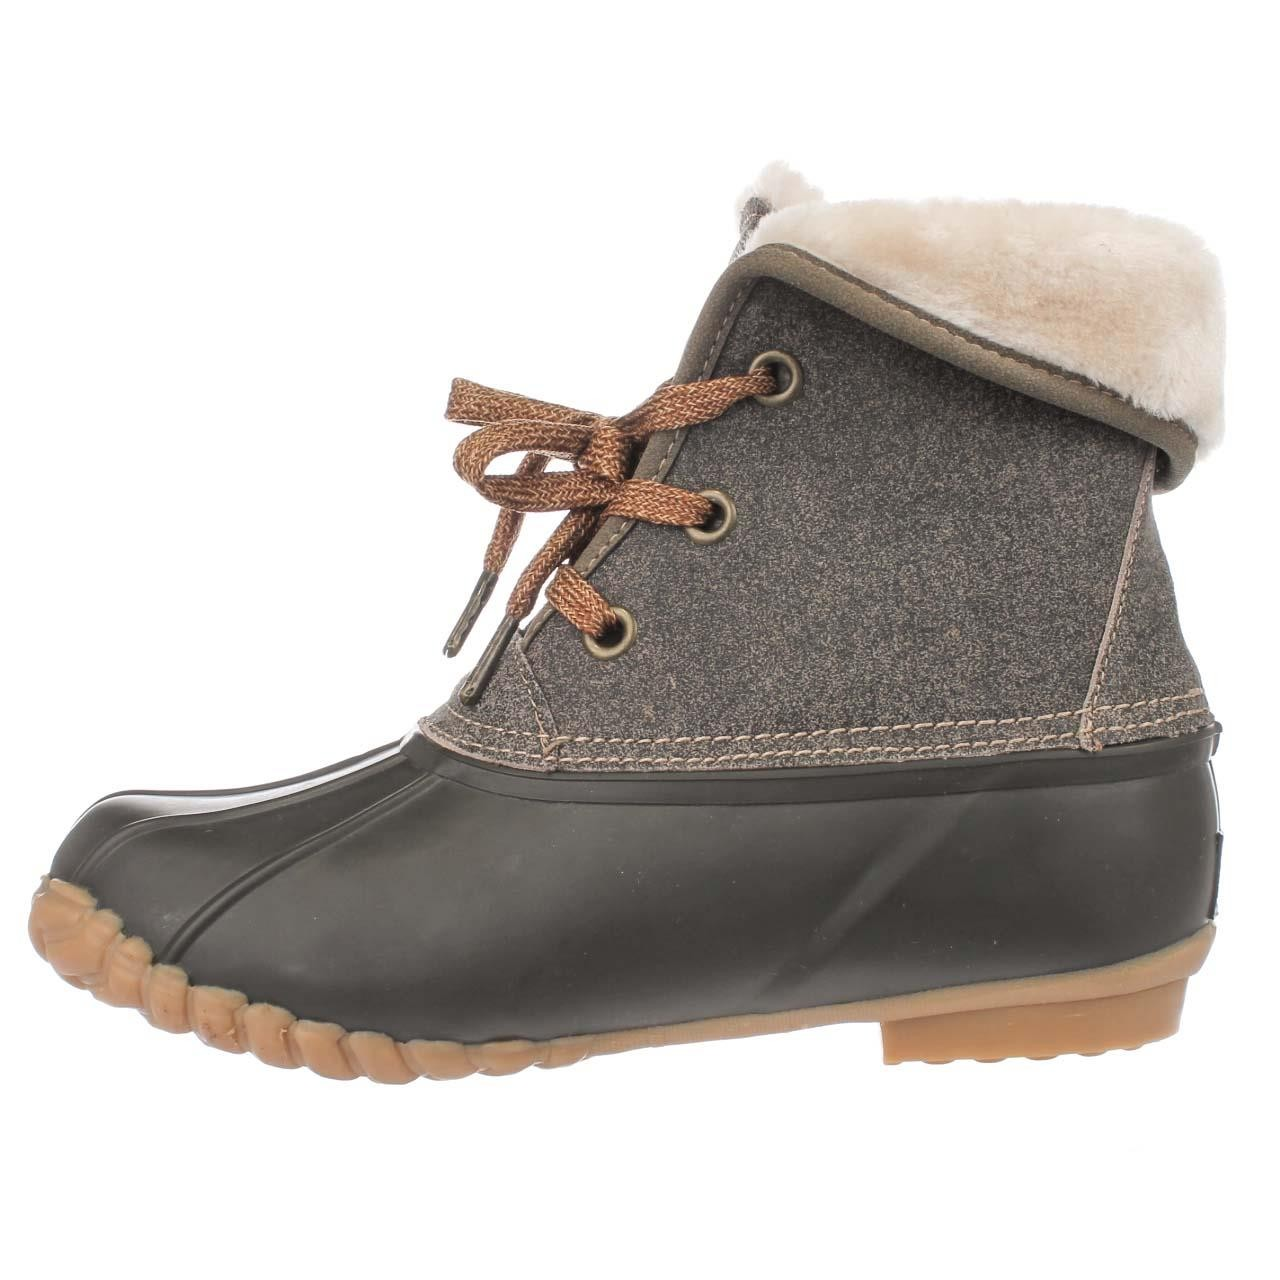 Sporto Womens Diana Leather Closed Toe Ankle Cold Weather...